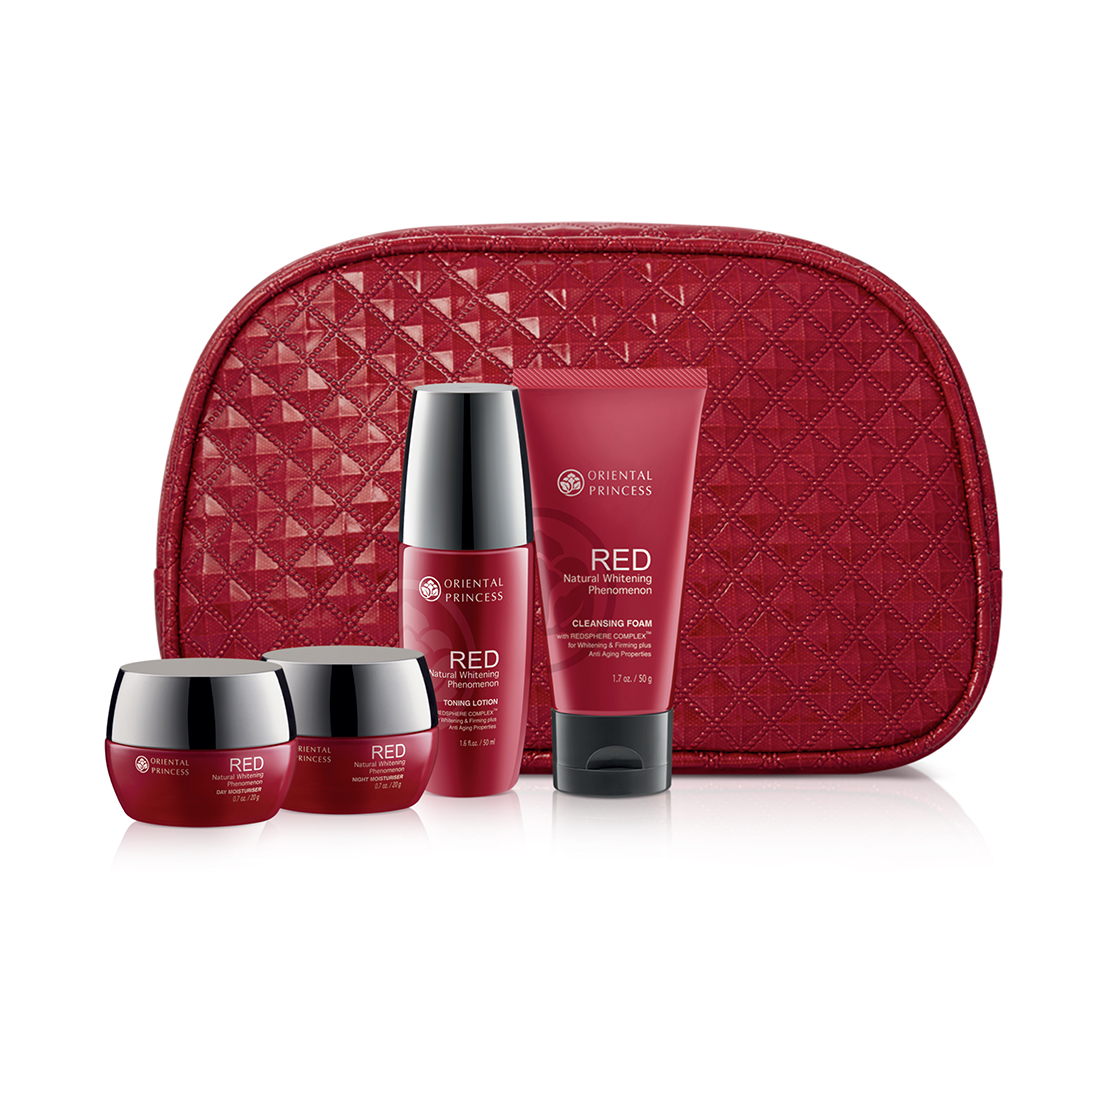 ORIENTAL PRINCESS RED Natural Whitening Phenomenon Collection Set